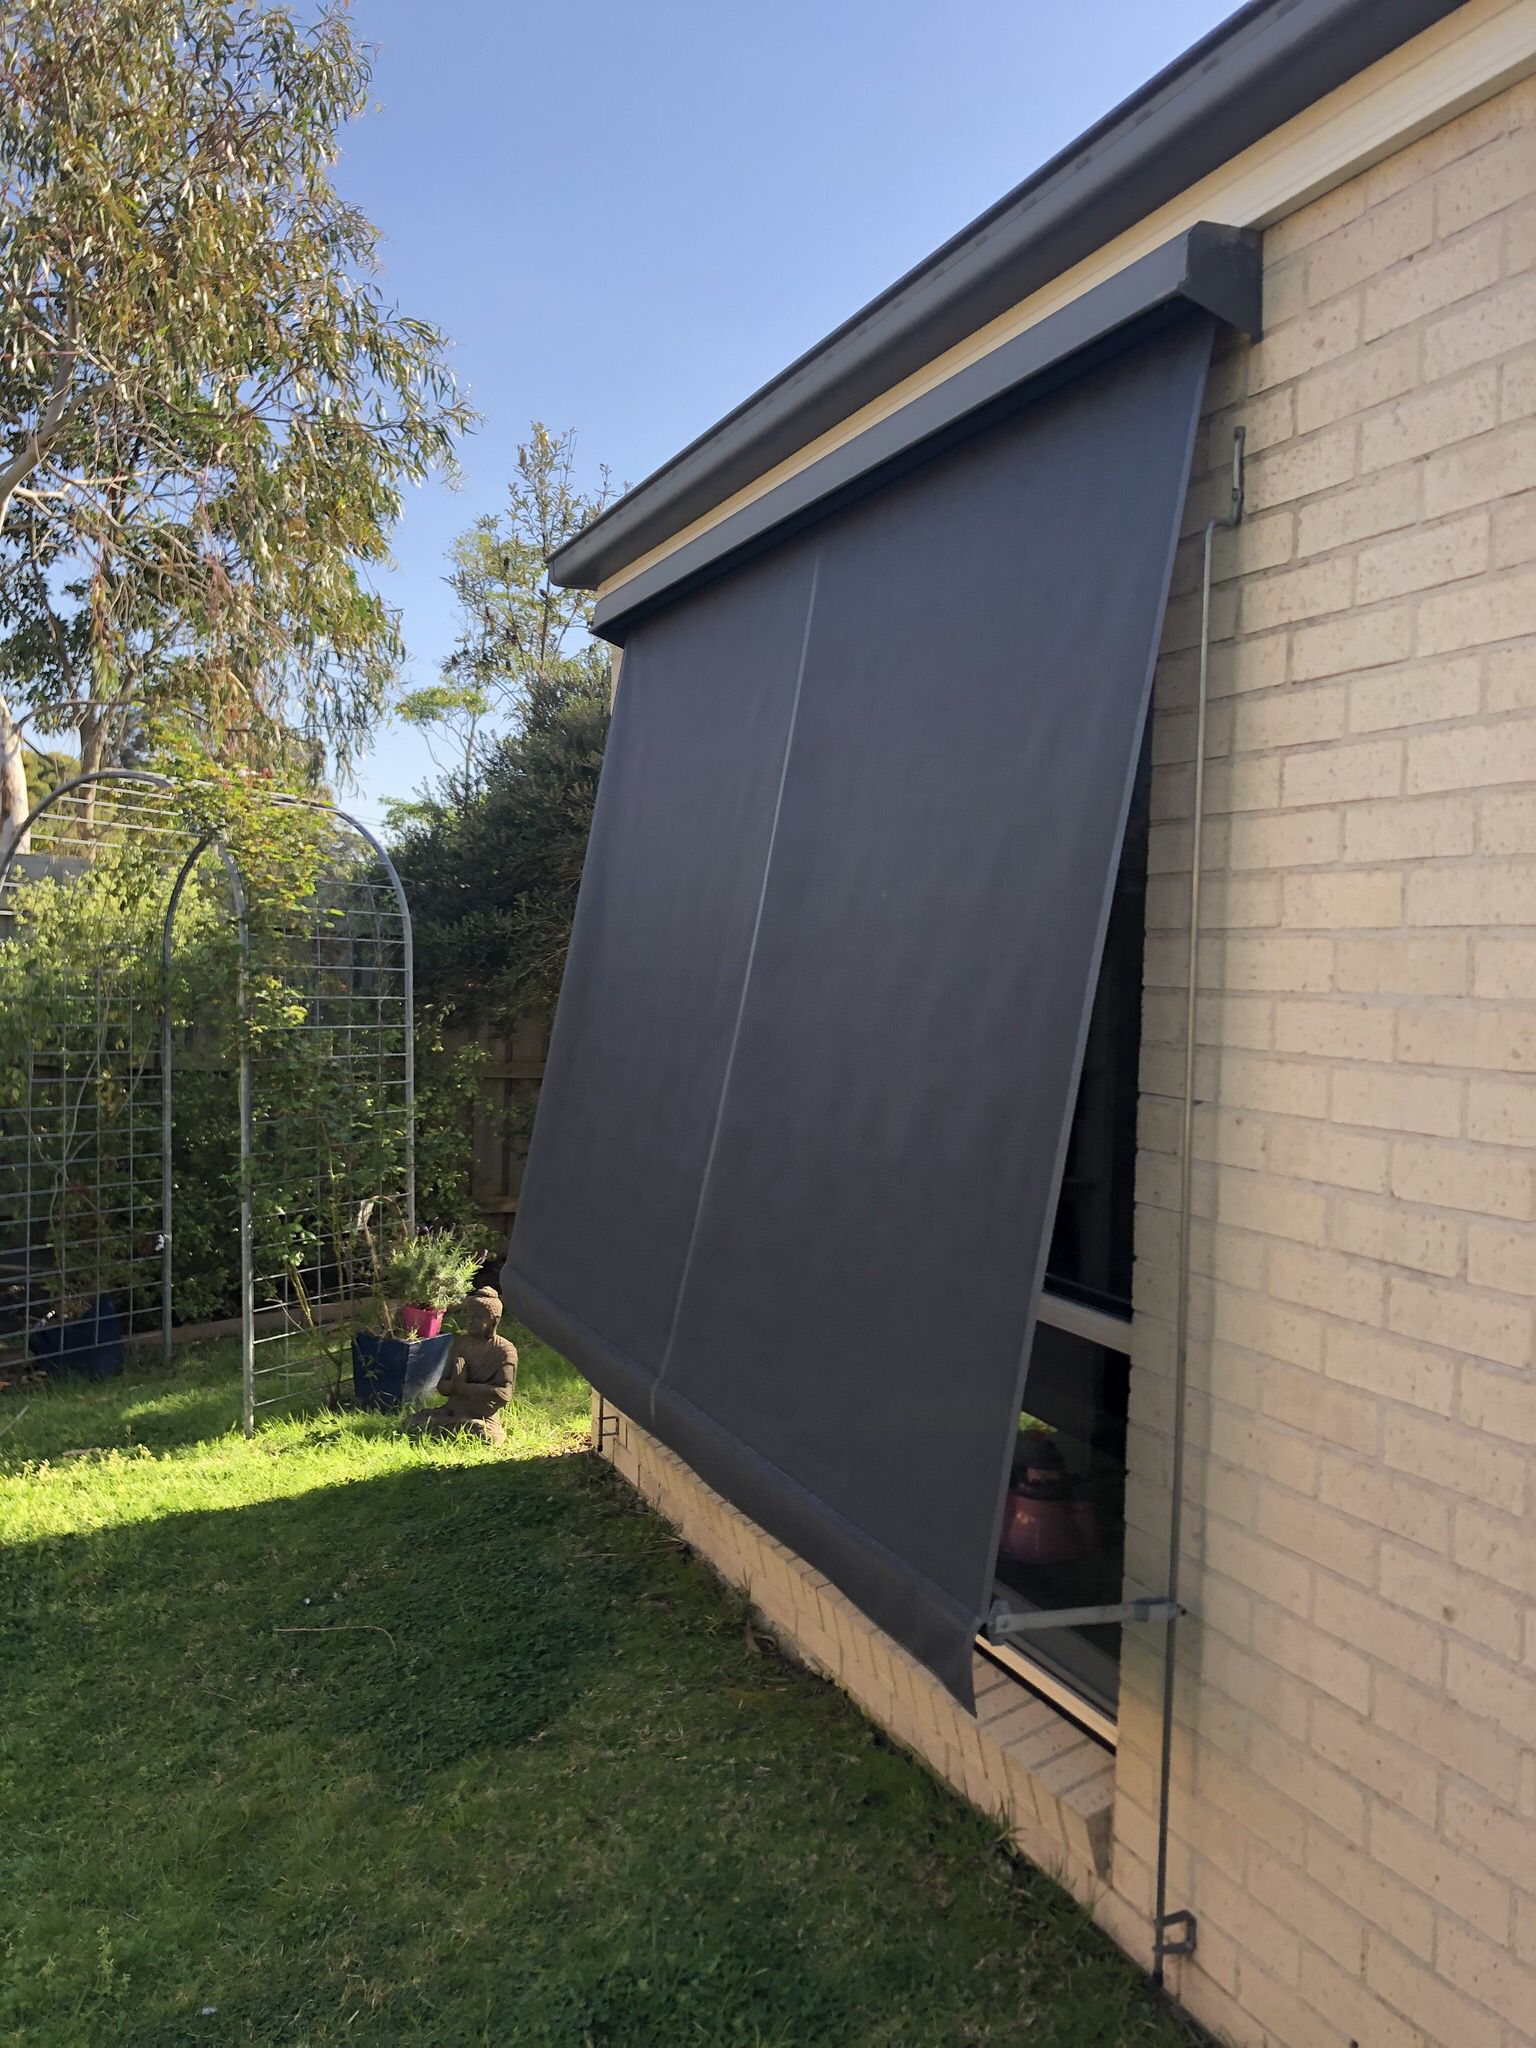 Cassette Sunscreen Blinds With Images Outdoor Blinds